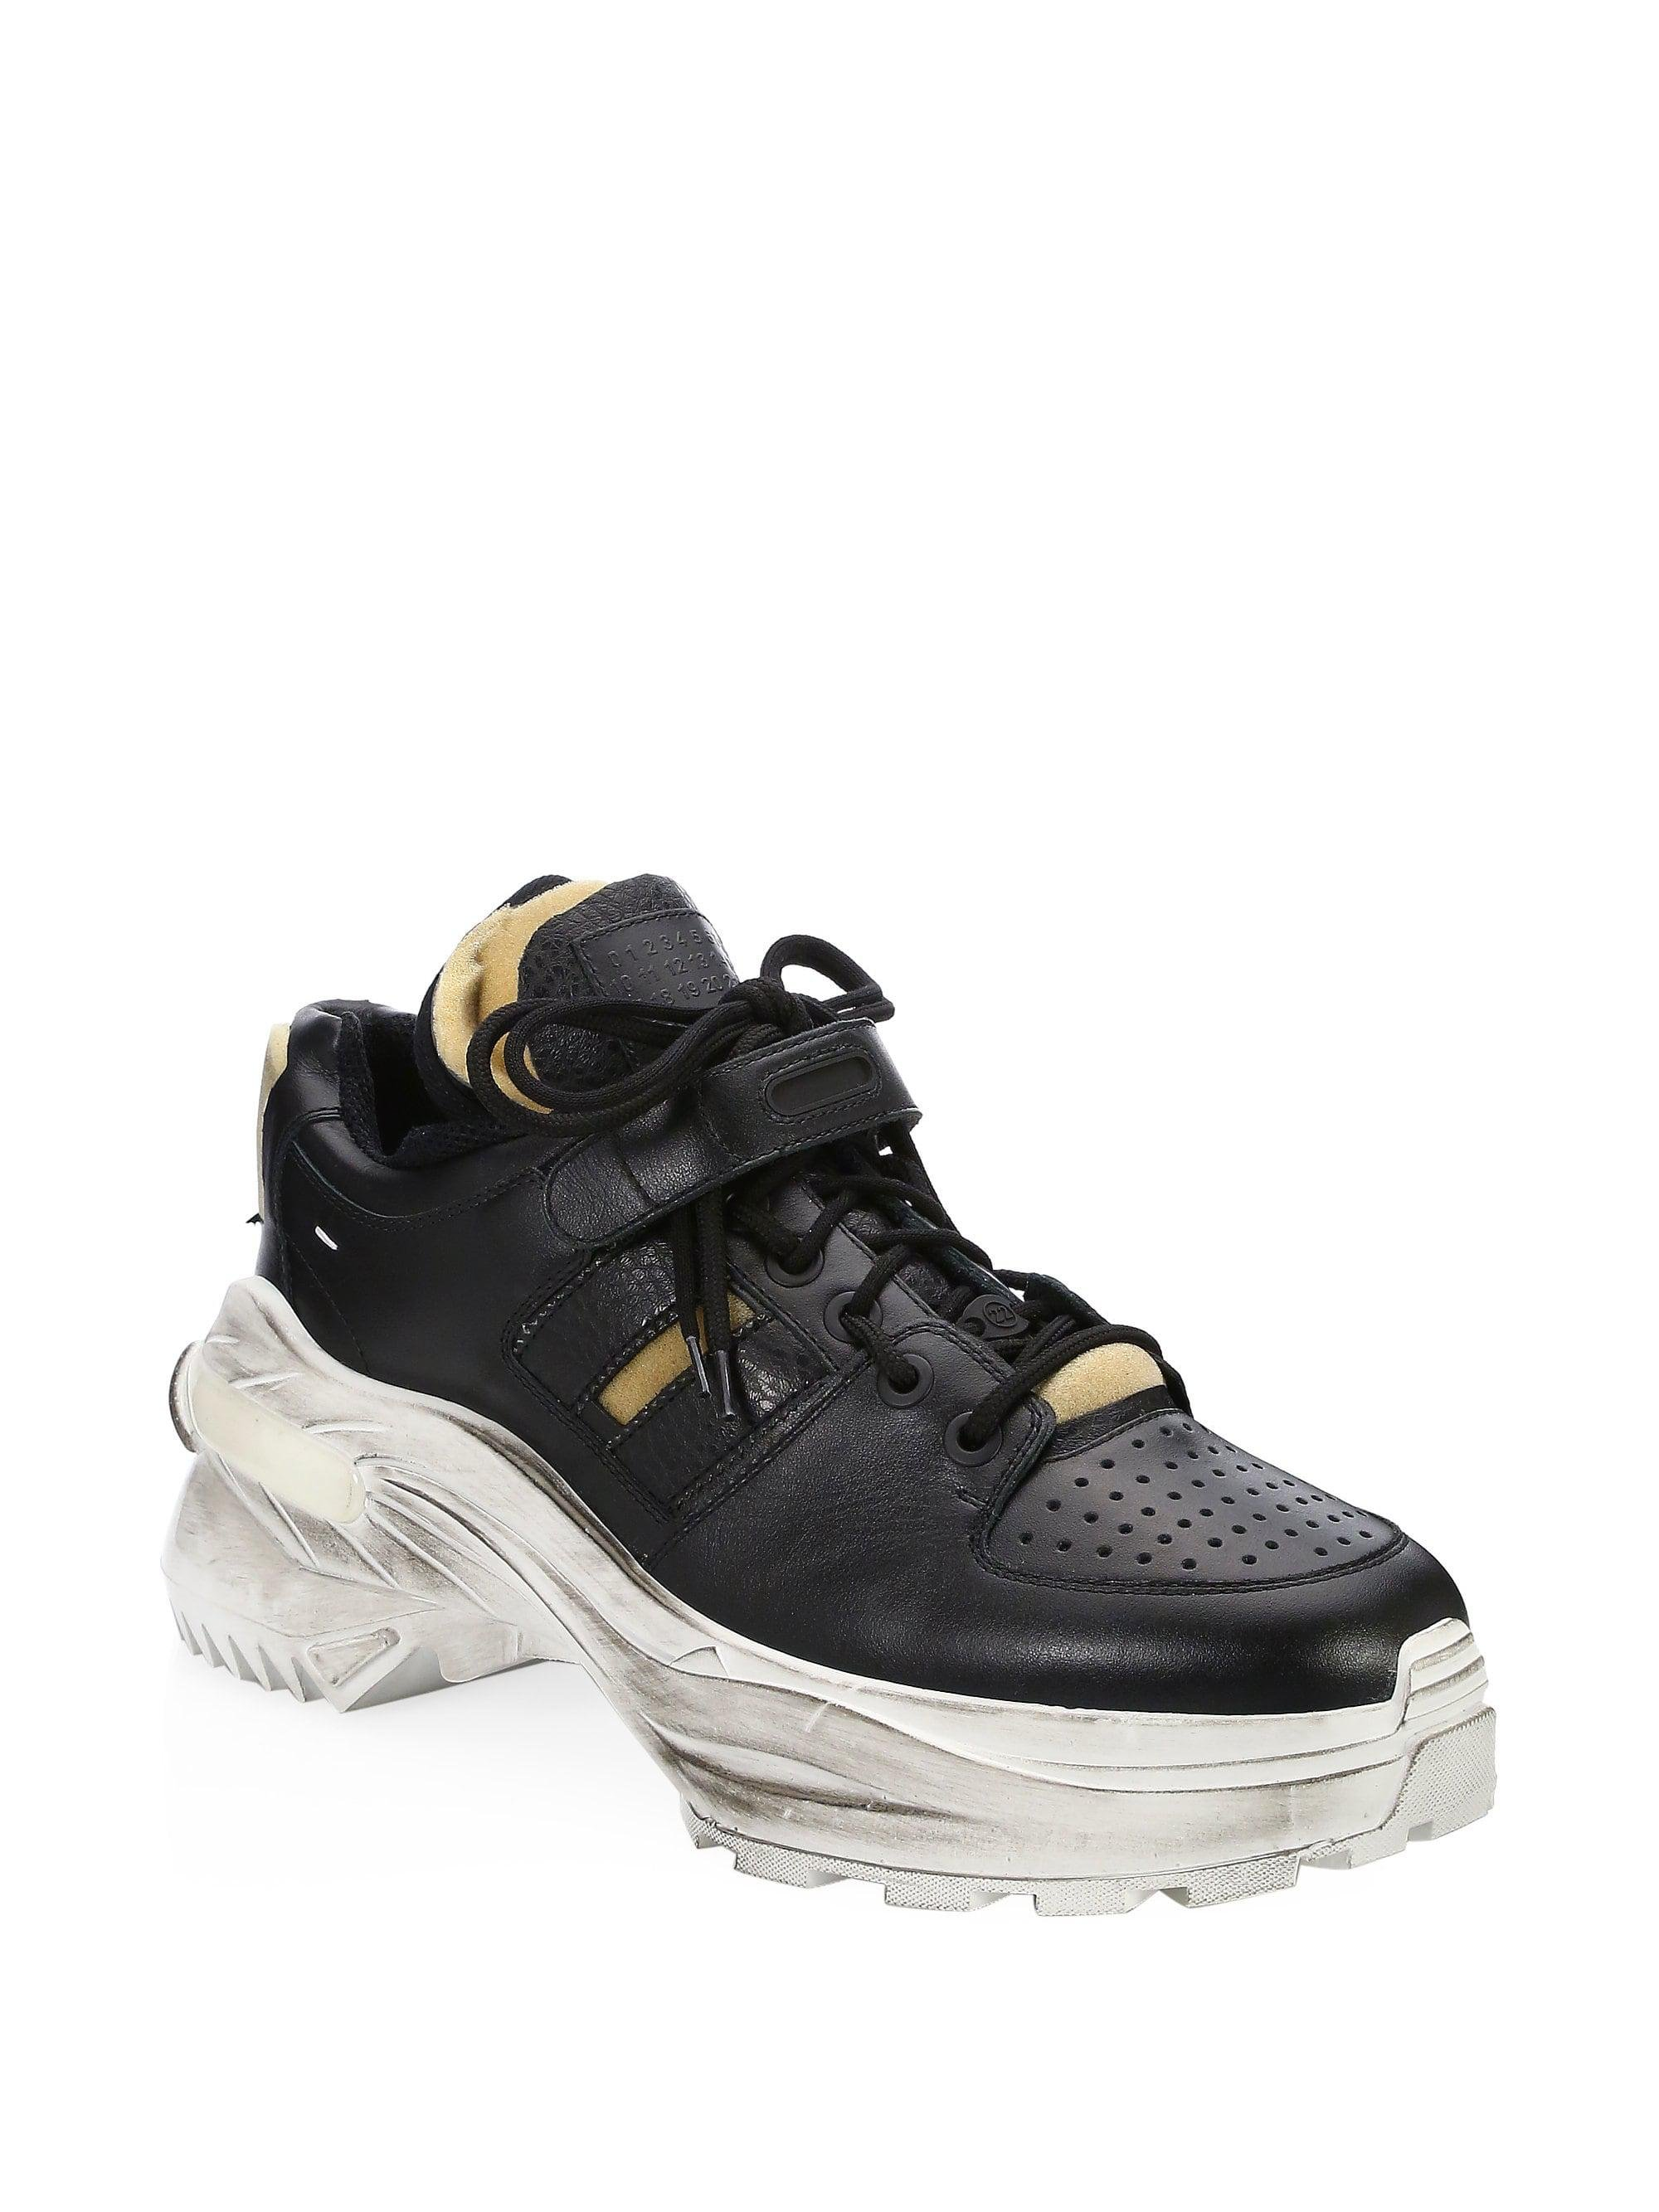 Lyst Maison Margiela Artisanal Leather Chunky Sneakers In Black